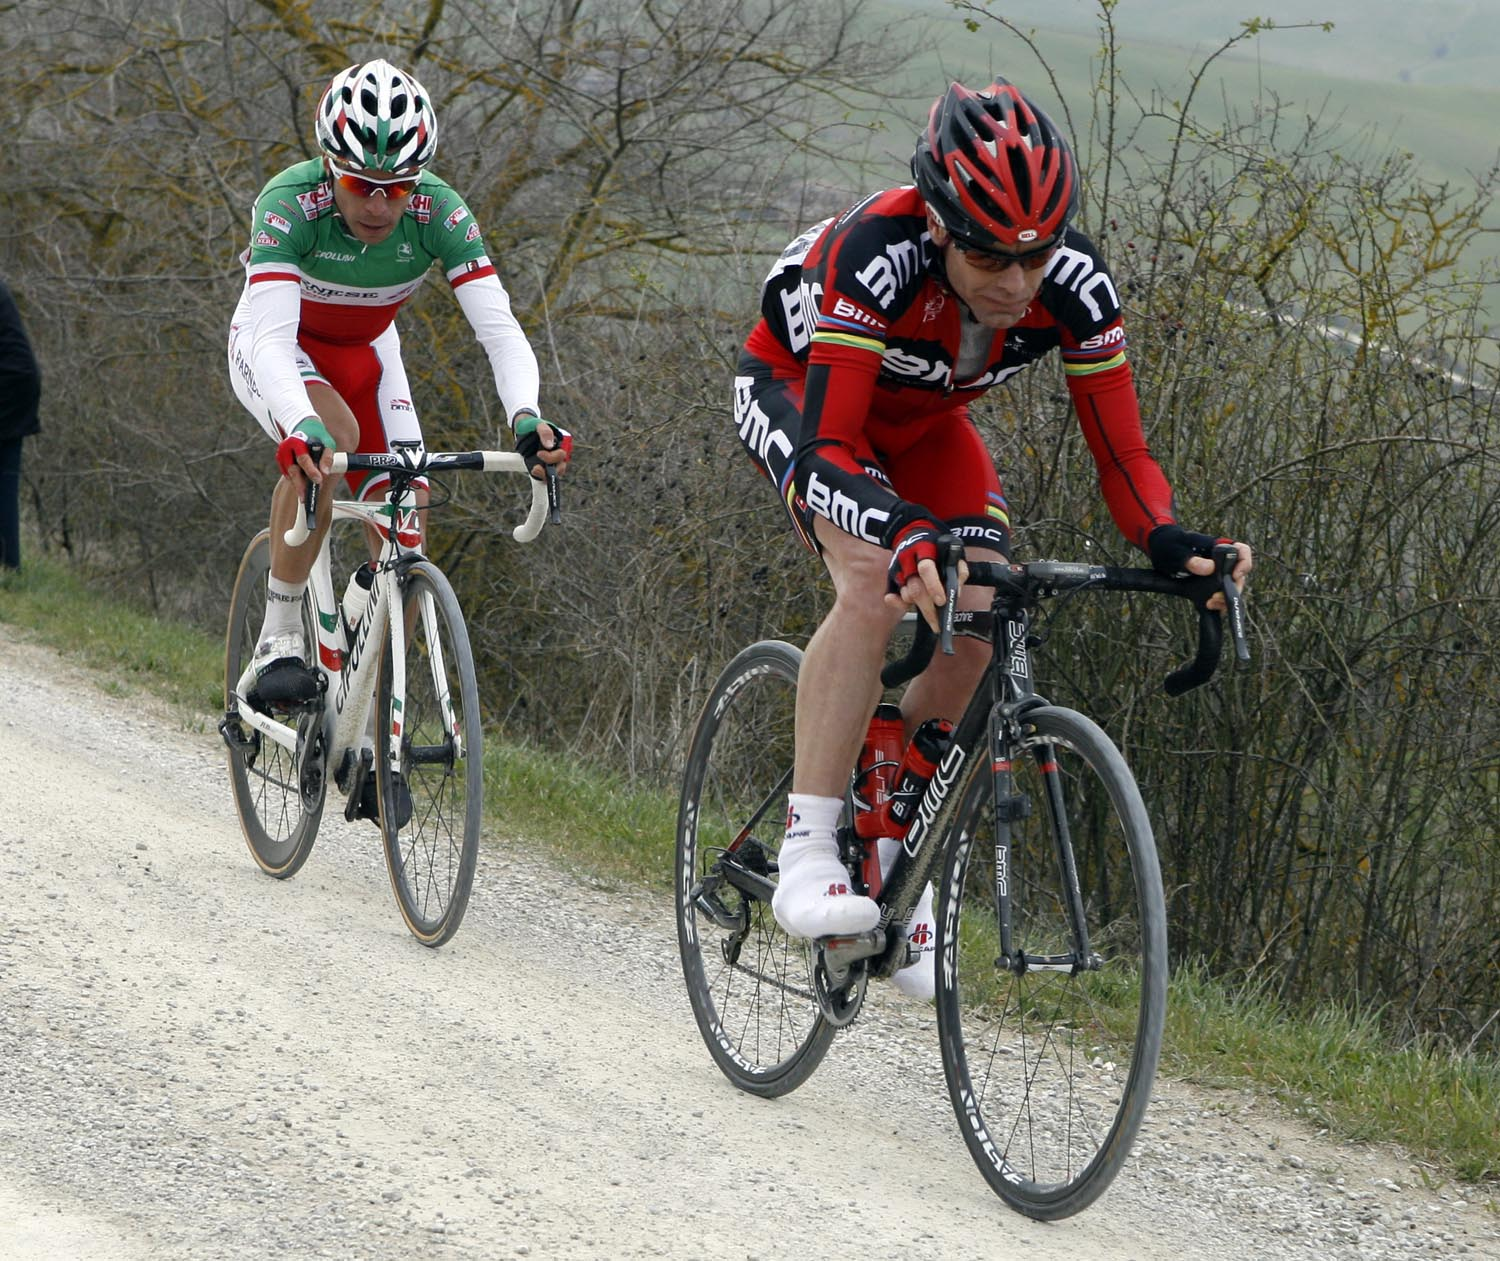 Cadel Evans and Giovanni Visconti, Strade Bianche 2011